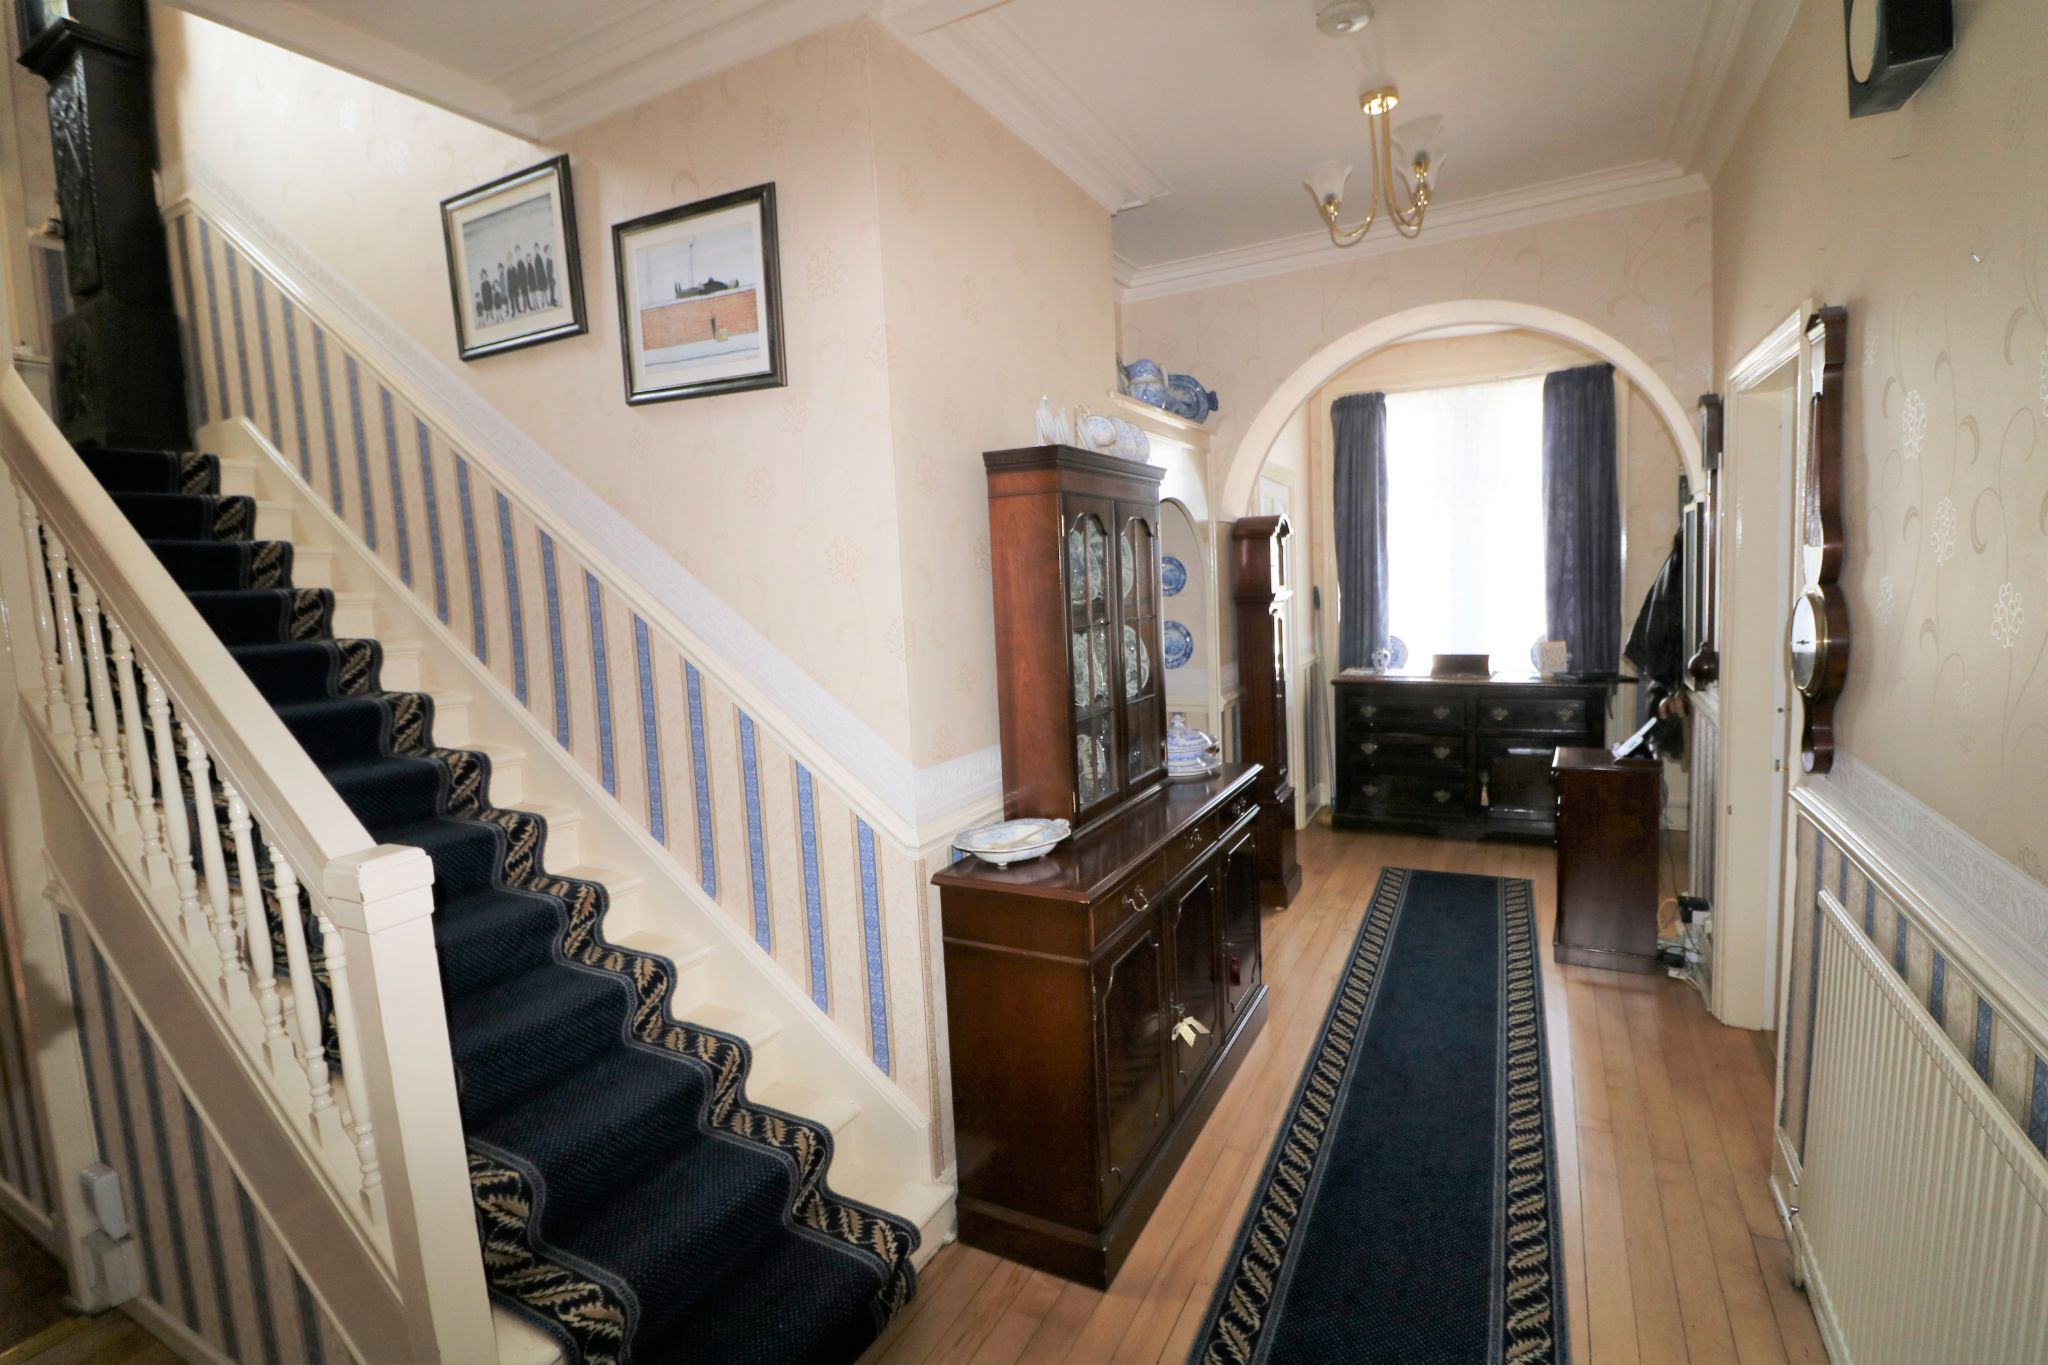 6 Bedroom Semi-detached House For Sale - Photograph 8